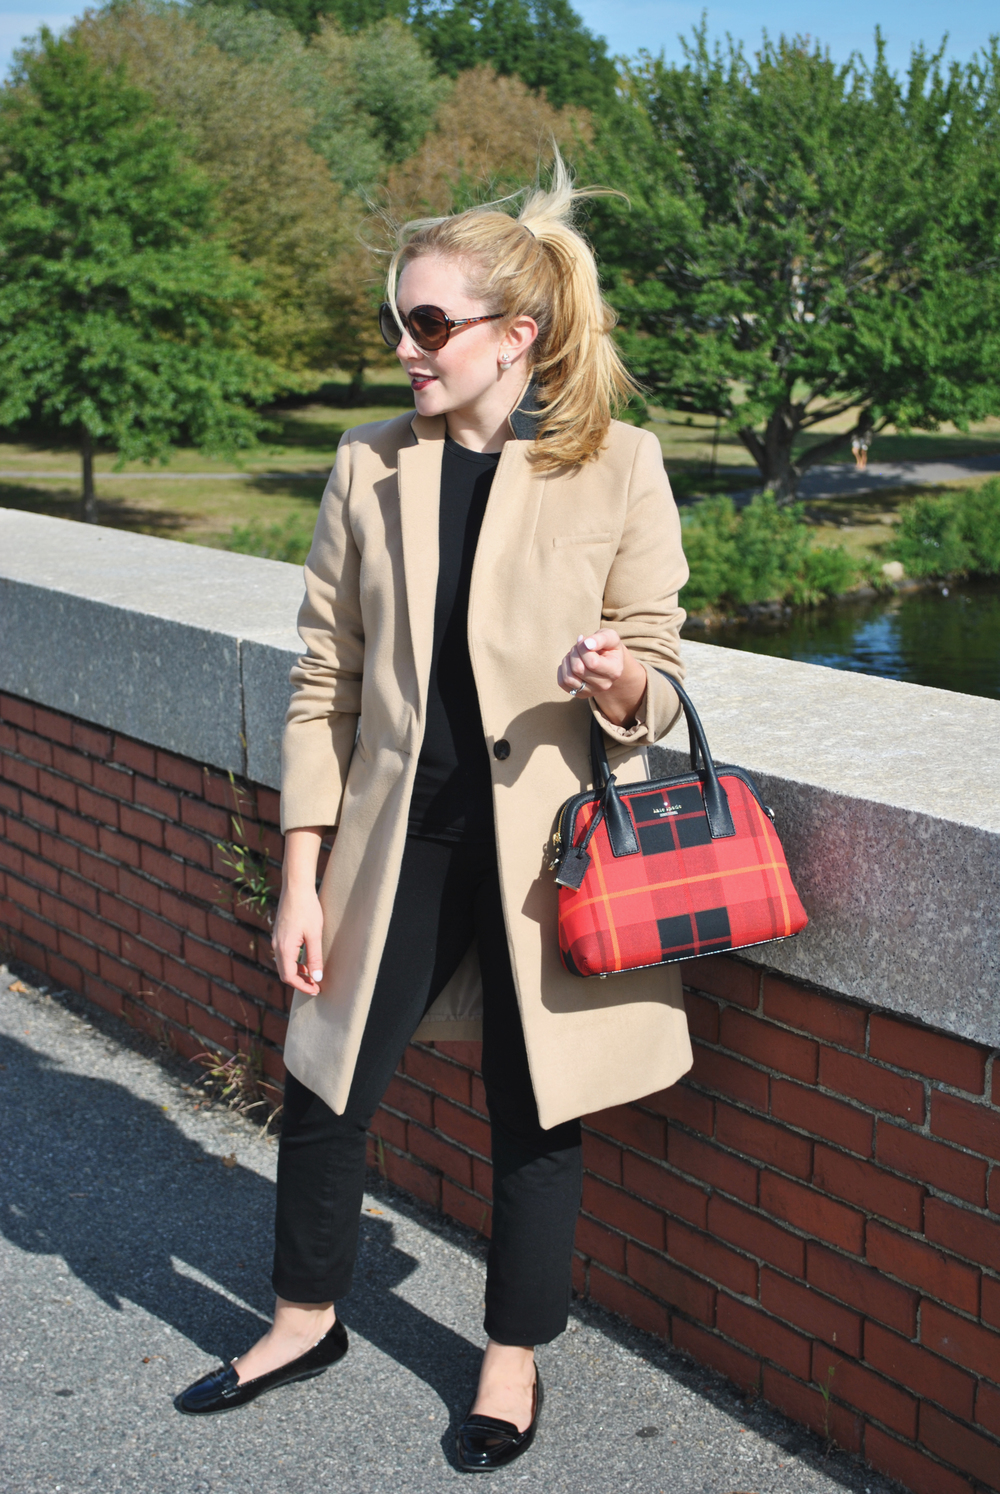 thoughtfulwish | camel // red // camel coat // red bag // kate spade // primark // primark USA // boston // boston fashion // preppy outfit // fall outfit